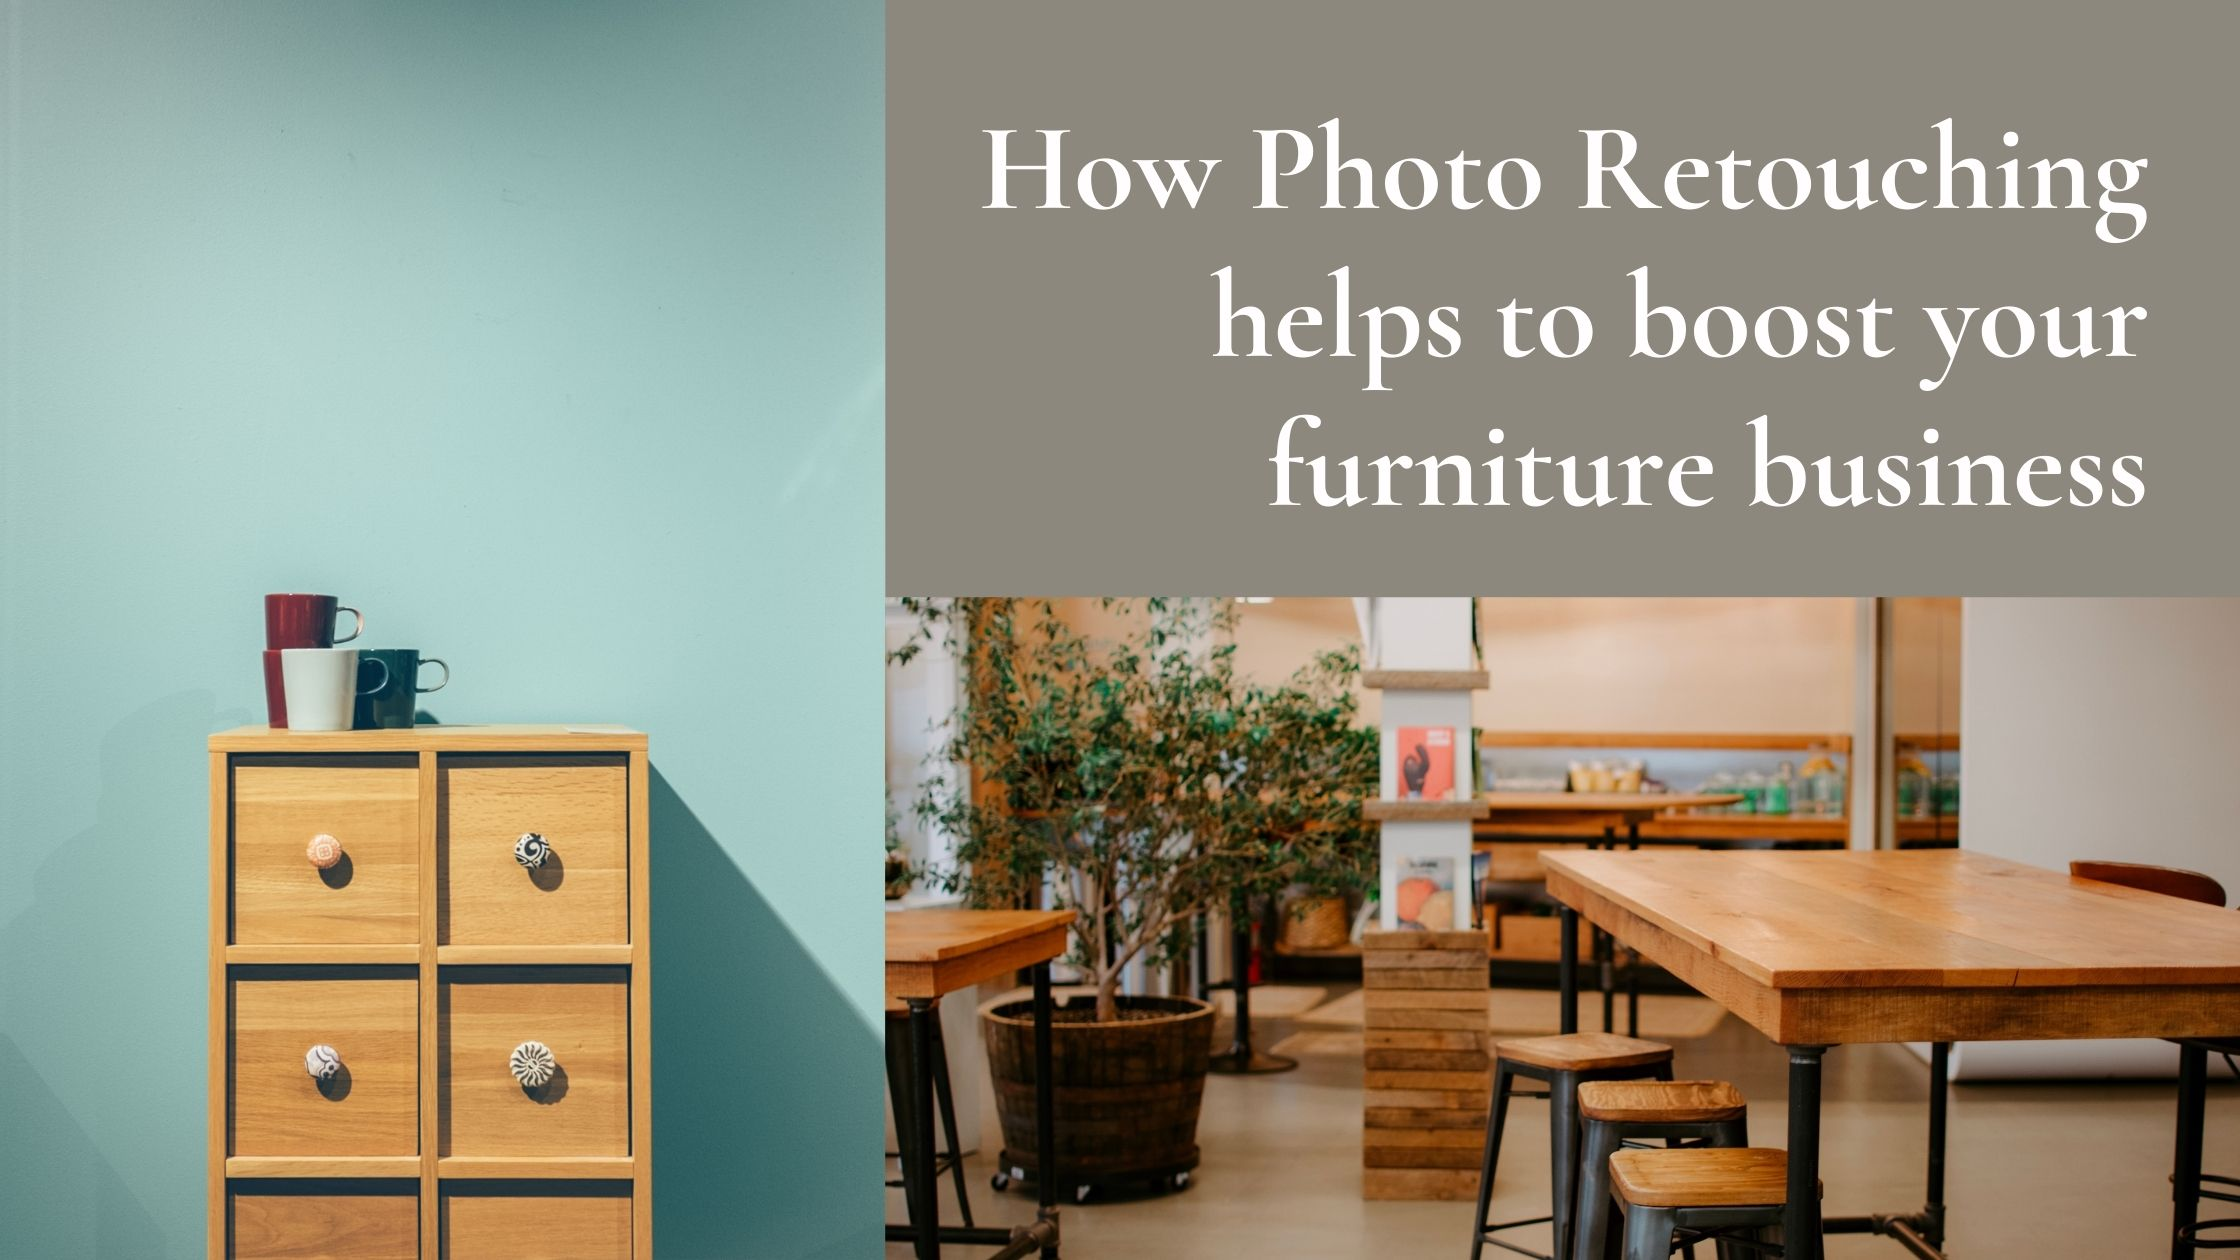 Photo Retouching in furniture business